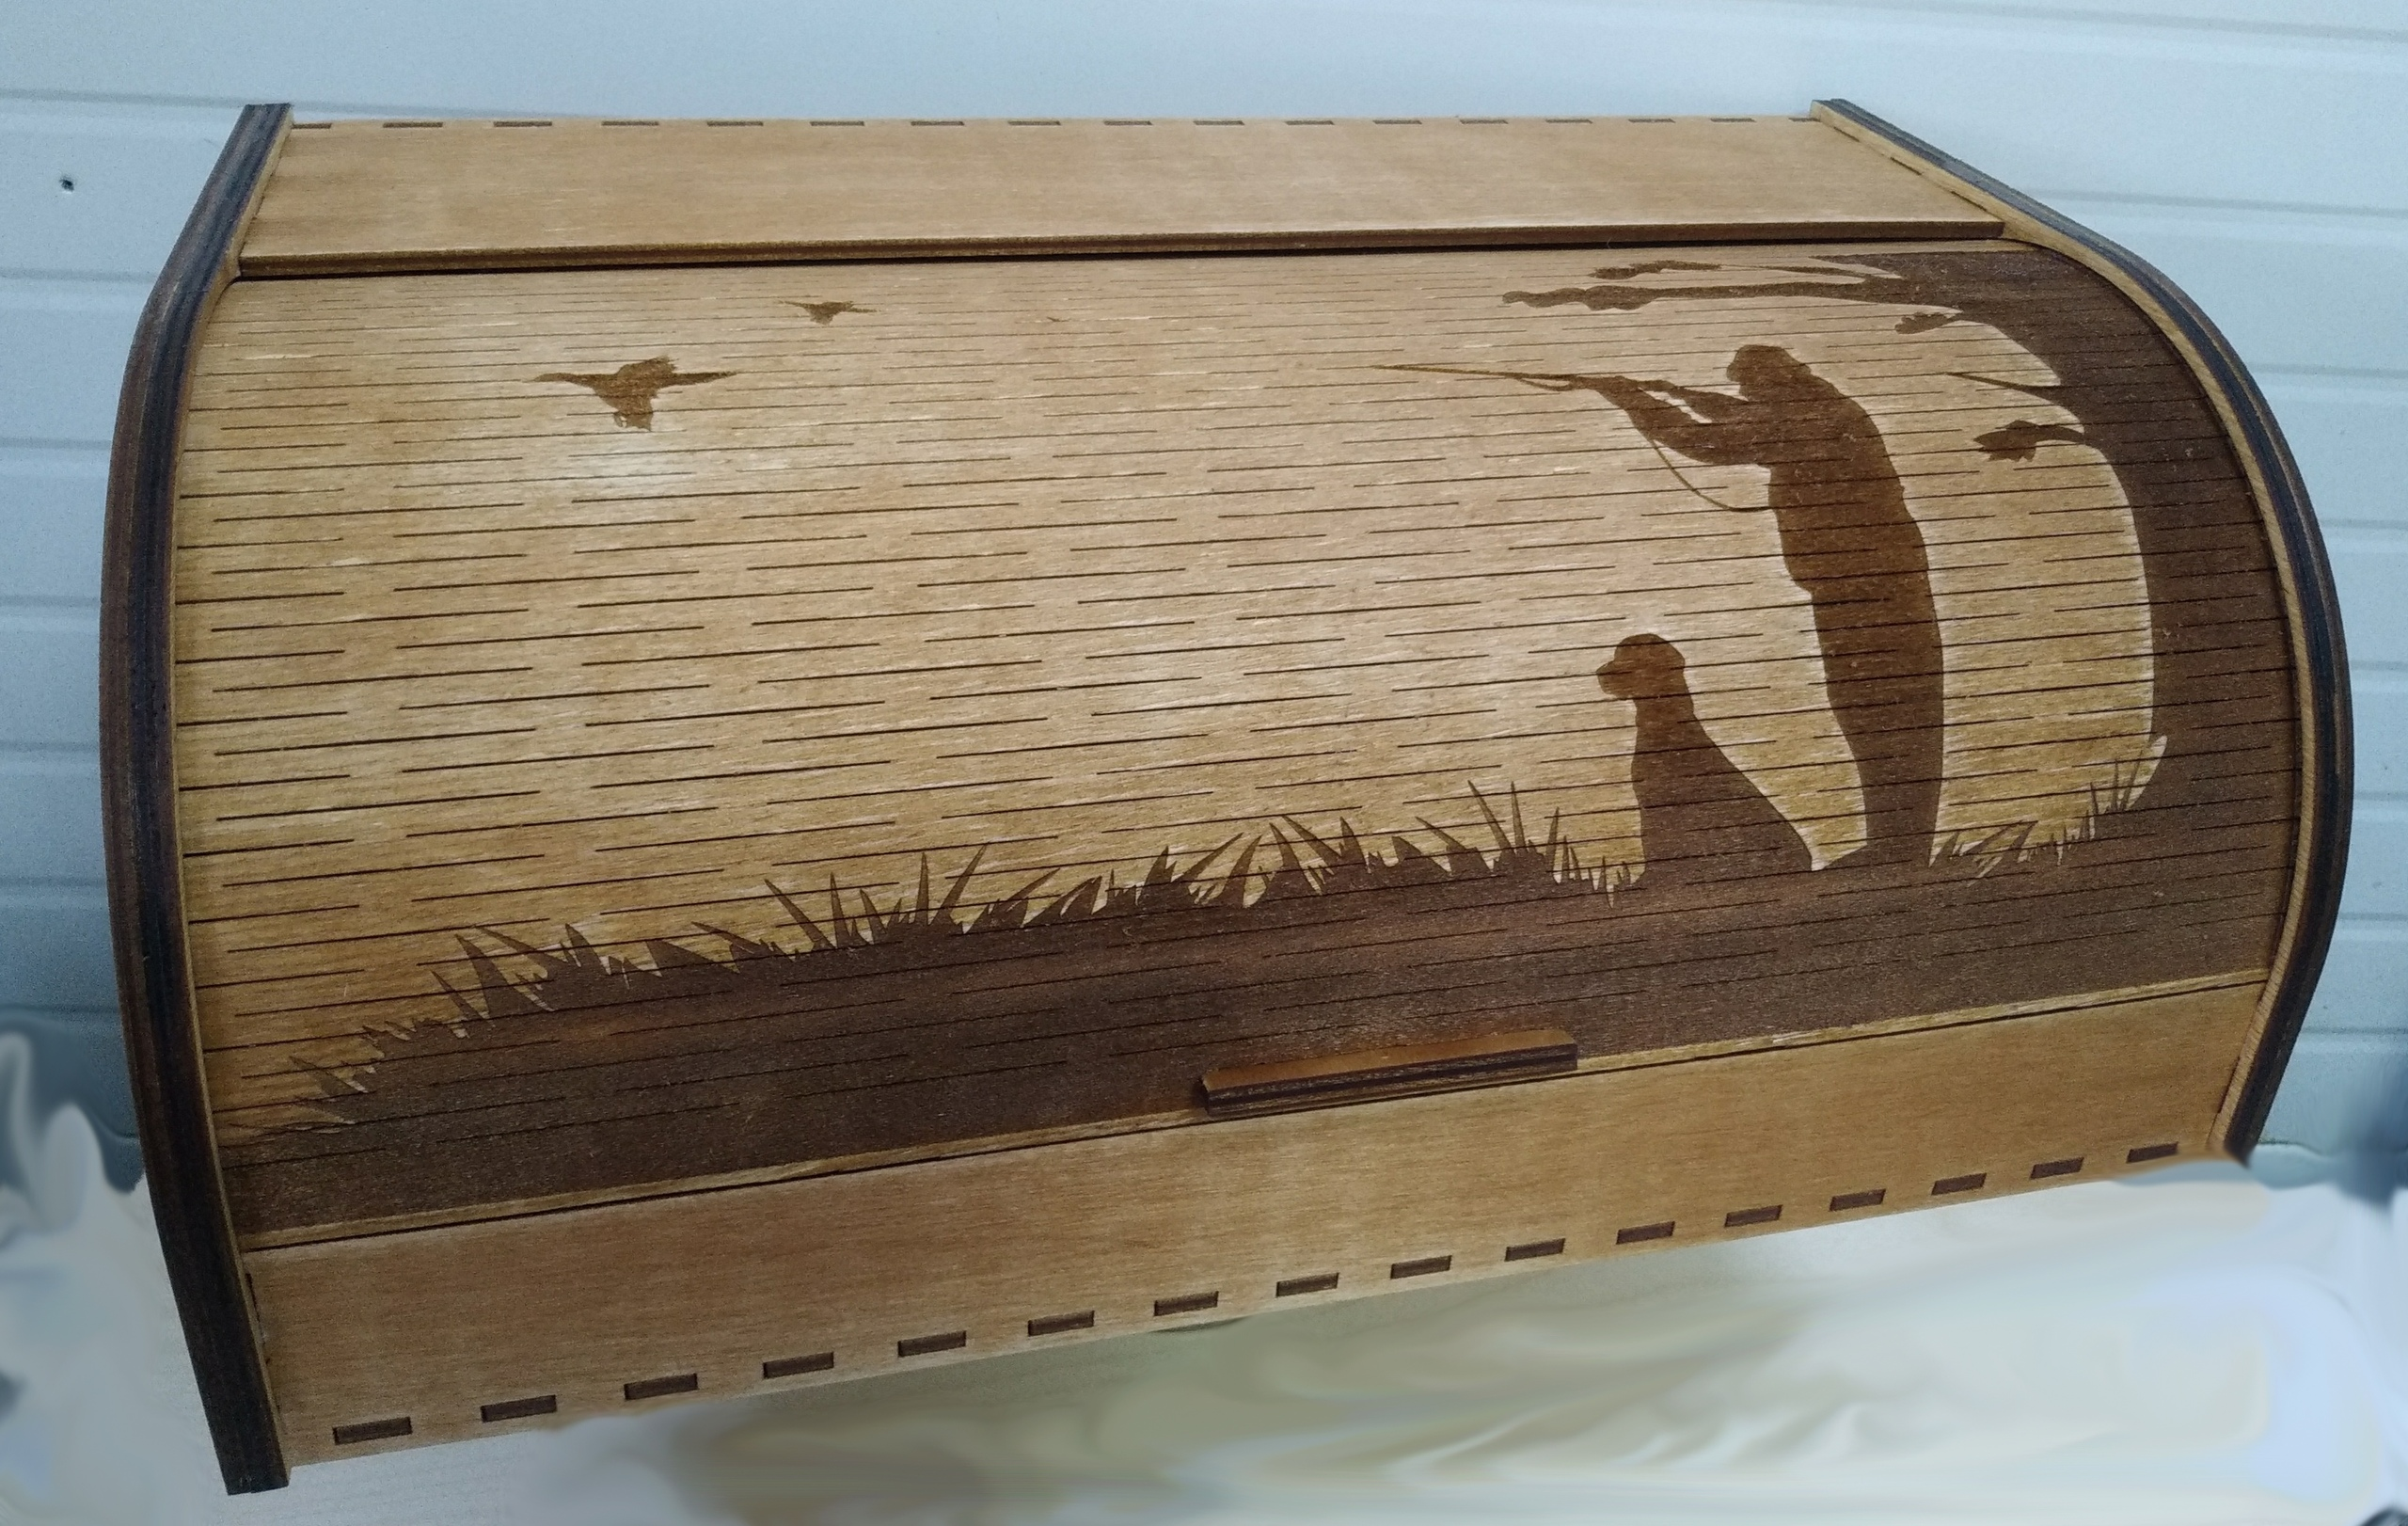 Bread Box As A Gift For A Lover Of Duck Hunting Breadbasket Free CDR Vectors Art